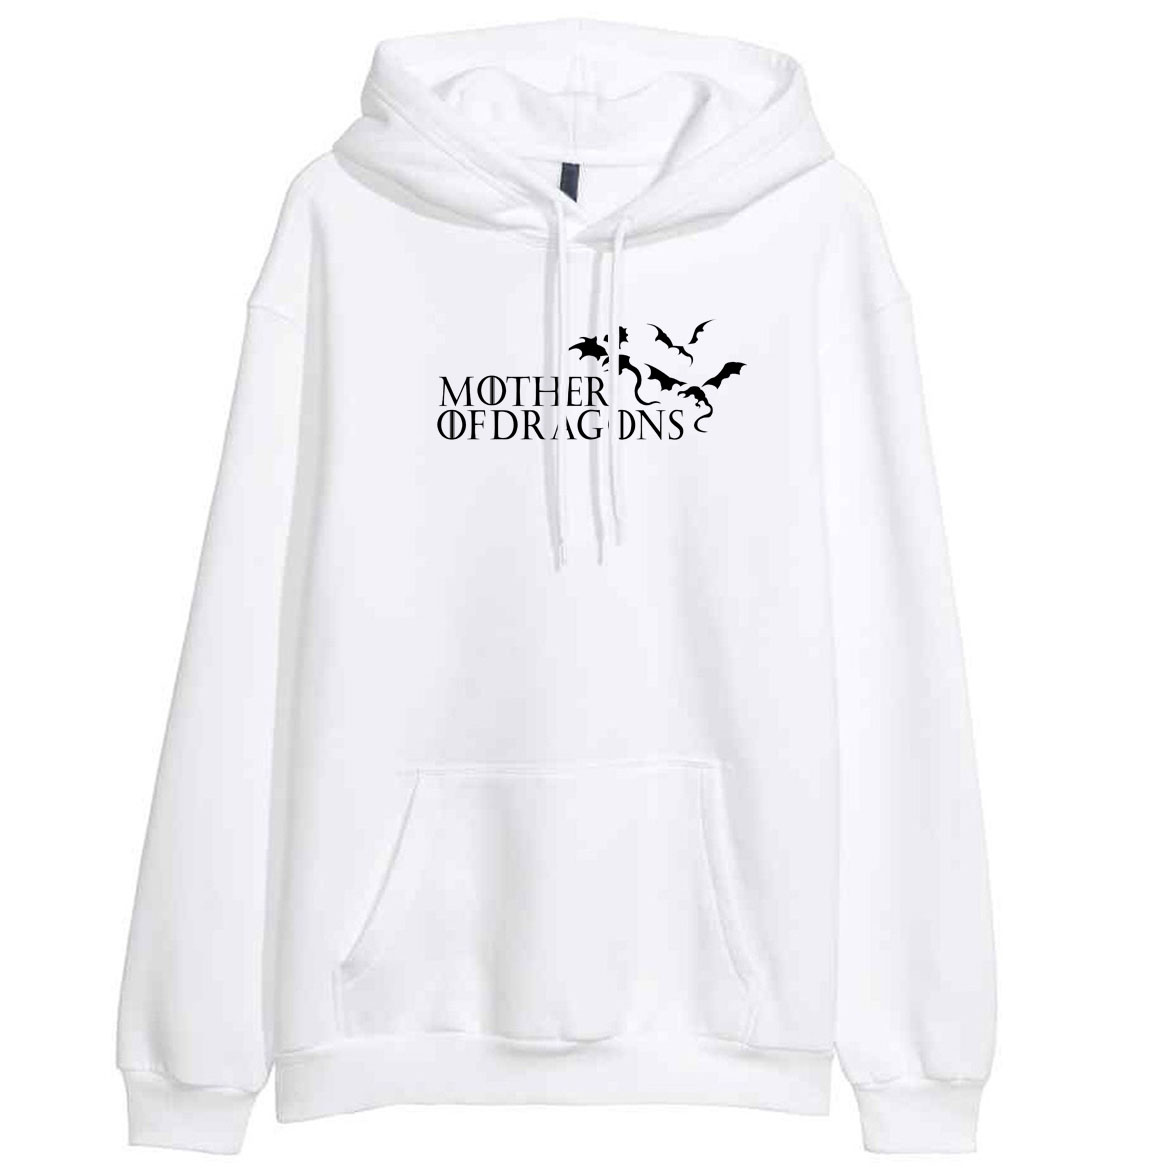 Game of Thrones 2019 New Arrival Print Spring Hoodies Winter Sweatshirt For Women Mother of Dragons Harajuku Streetwear Hipster